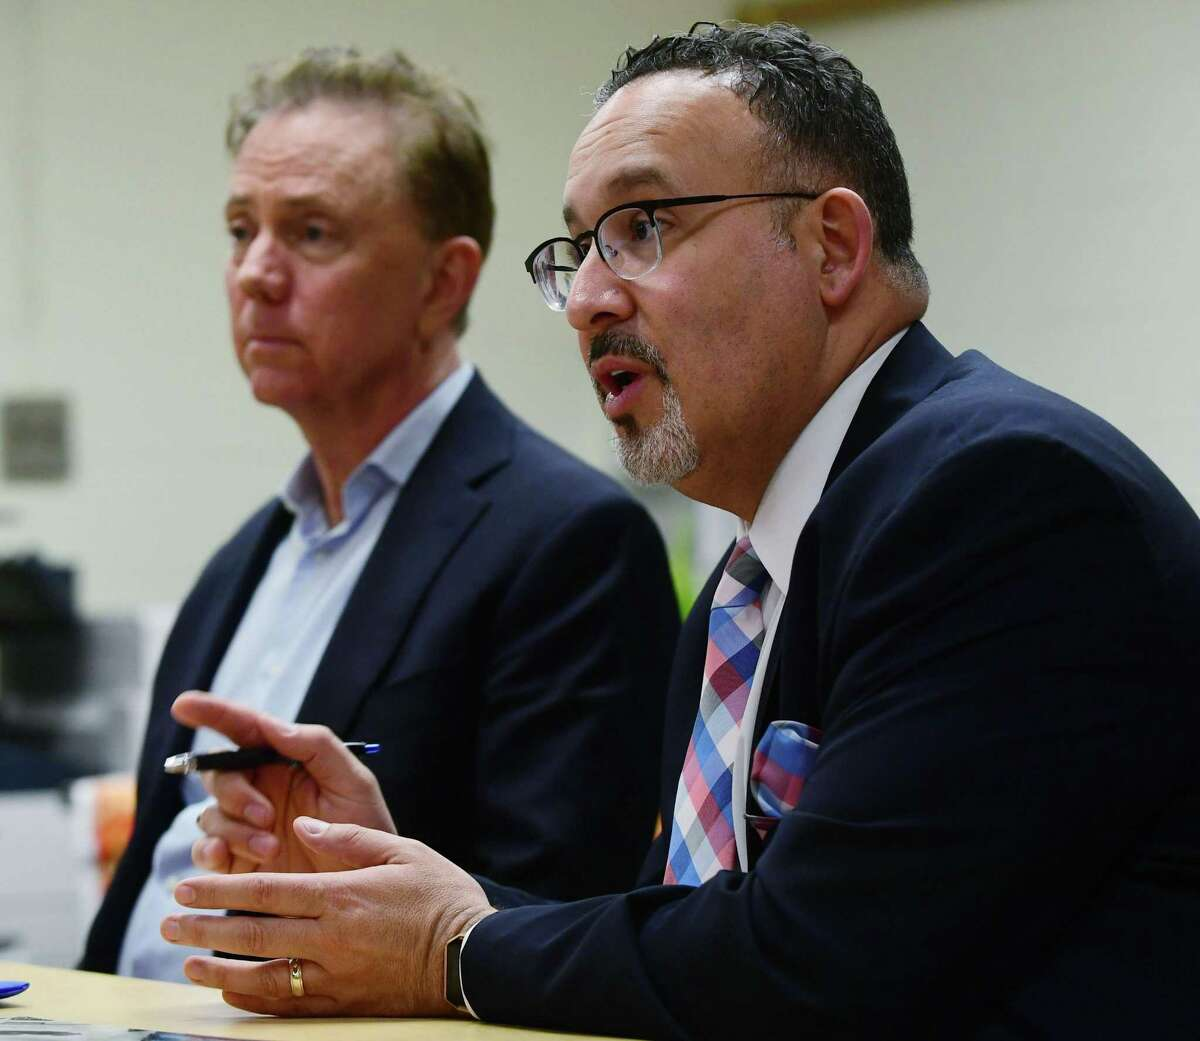 Education State Department of Education Commissioner Miguel Cardona and Gov. Ned Lamont listen to a presentation on the dual language curriculum as they visit Silvermine Dual Language Magnet School in Norwalk on Feb. 28.